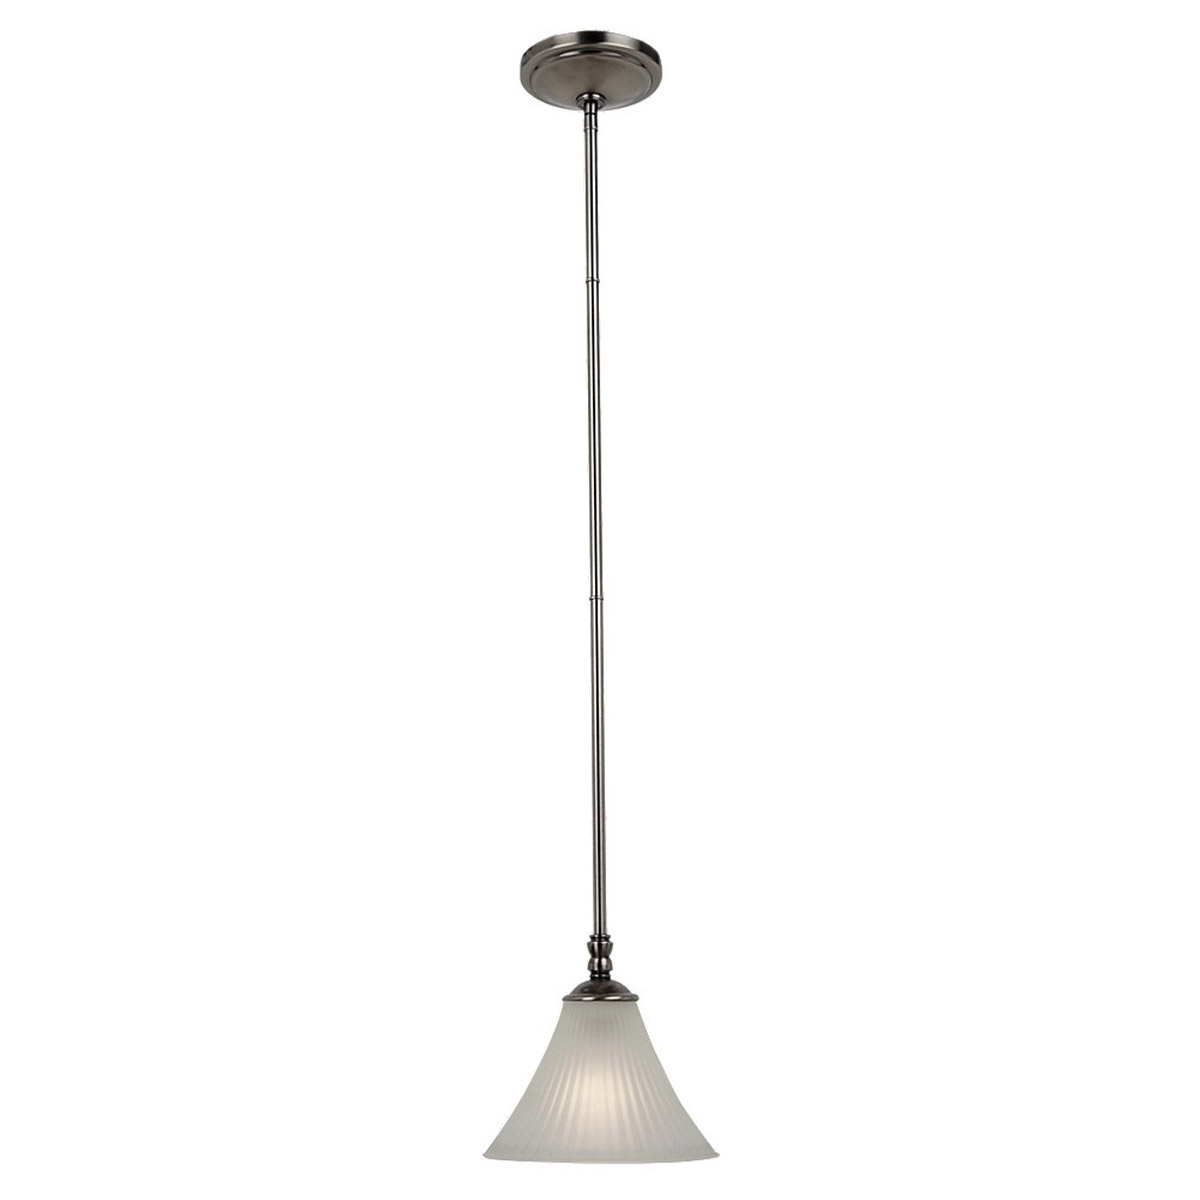 Sea Gull Lighting Joliet 1 Light Mini Pendant in Antique Brushed Nickel 61935-965 photo